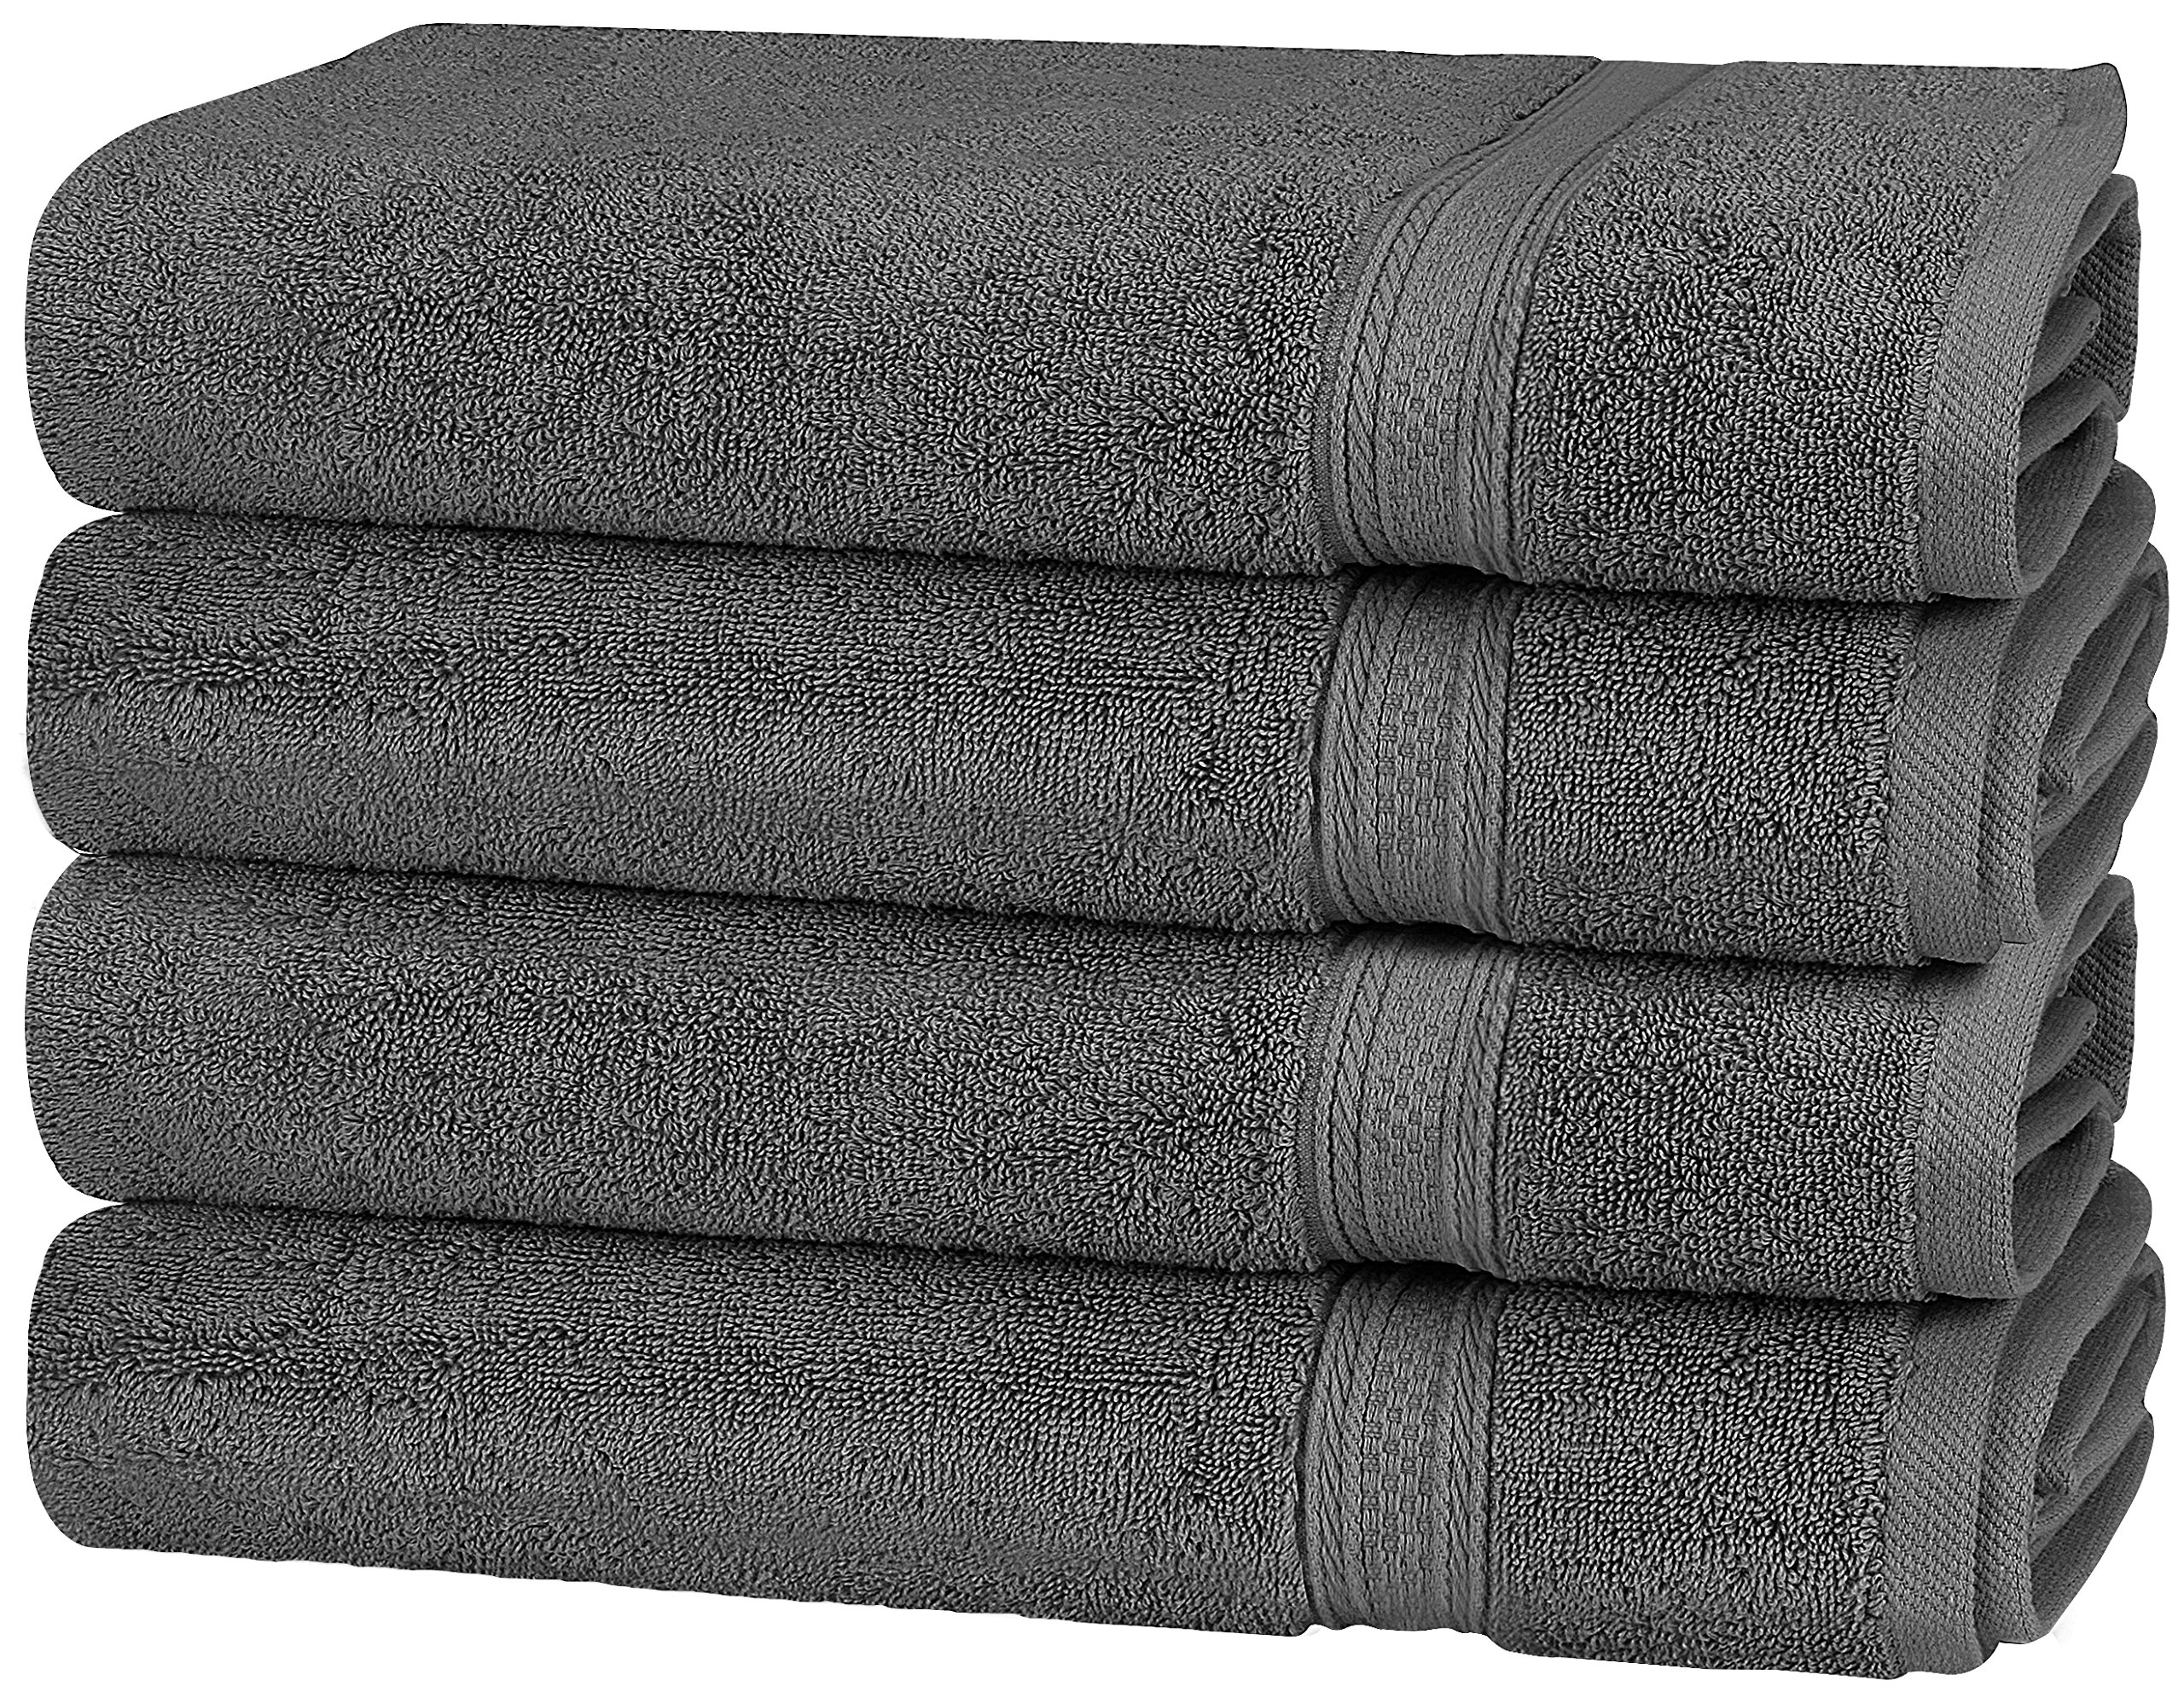 Utopia Towels 700 GSM Cotton Large Hand Towels (Grey, 4-Pack,16 x 28 inches) - Multipurpose Use for Bath, Hand, Face, Gym and Spa